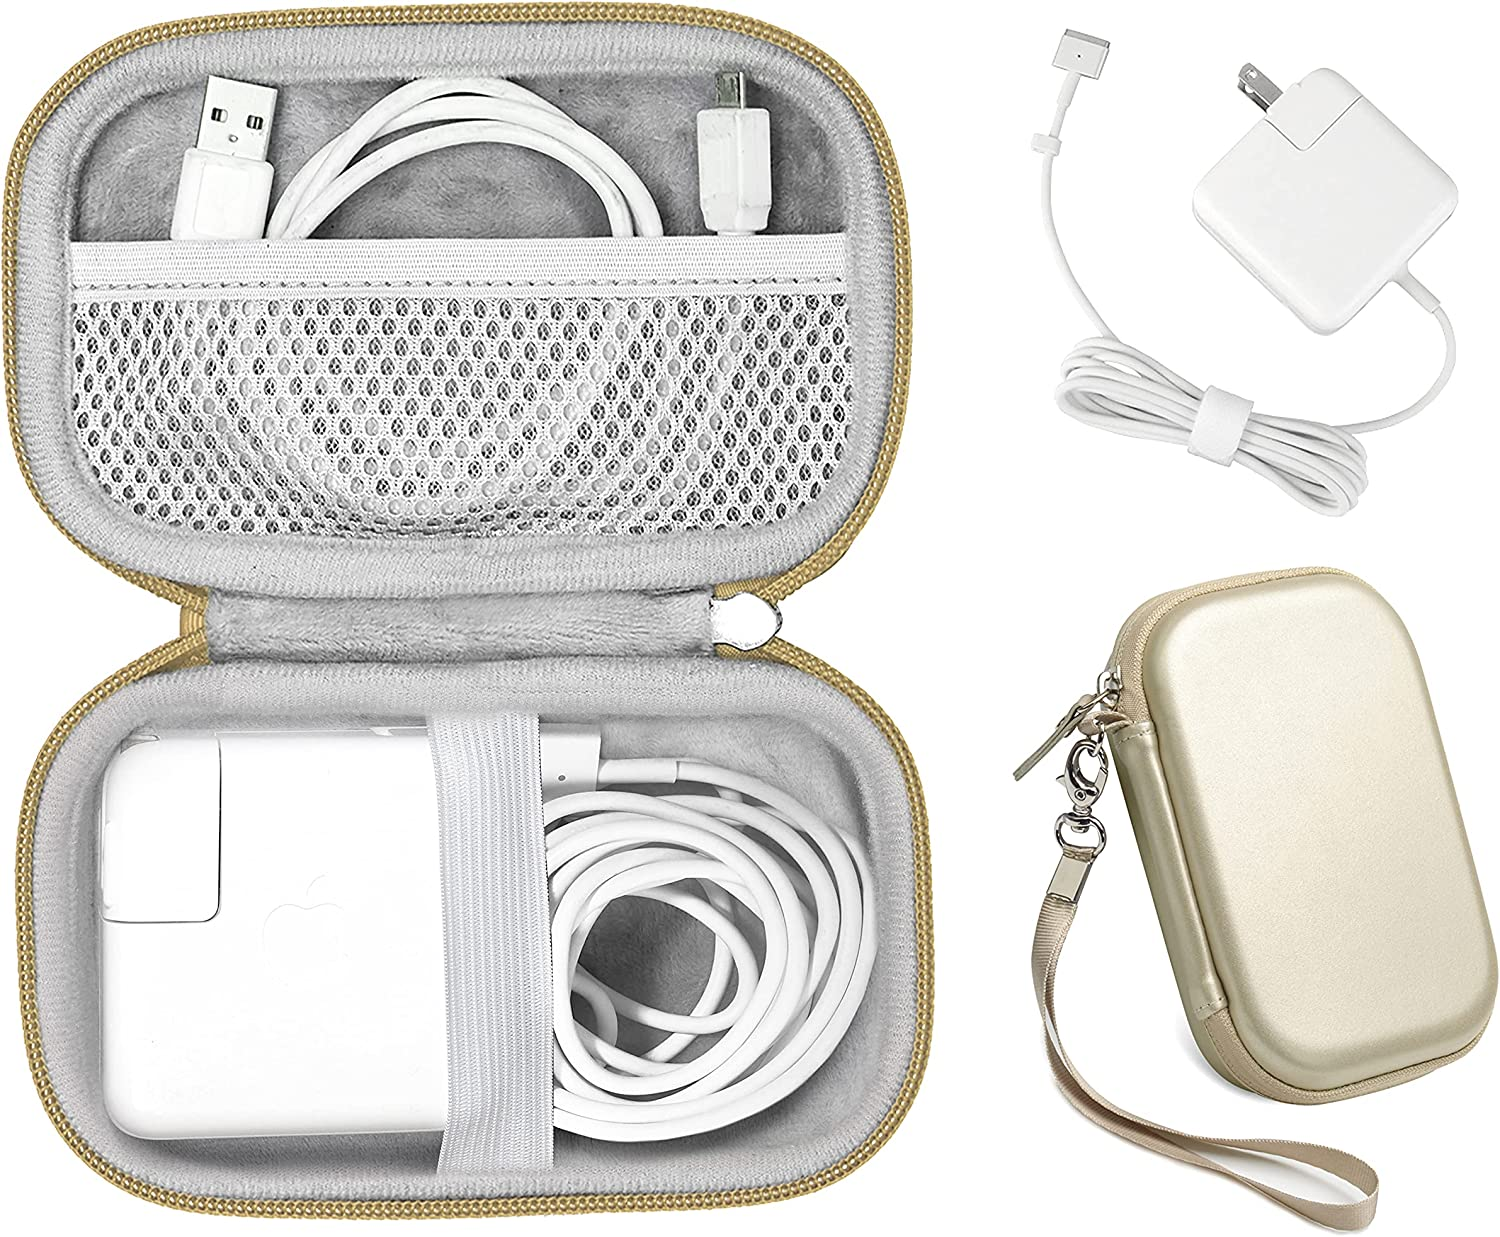 Handy Protective Case for MacBook Air Power Adapter, Also Good for USB C Hub, Type C Hub, USB Multi Ports Type c hub, Featured Compact case for Easy Storage and Protection, mesh Pocket (Gold)